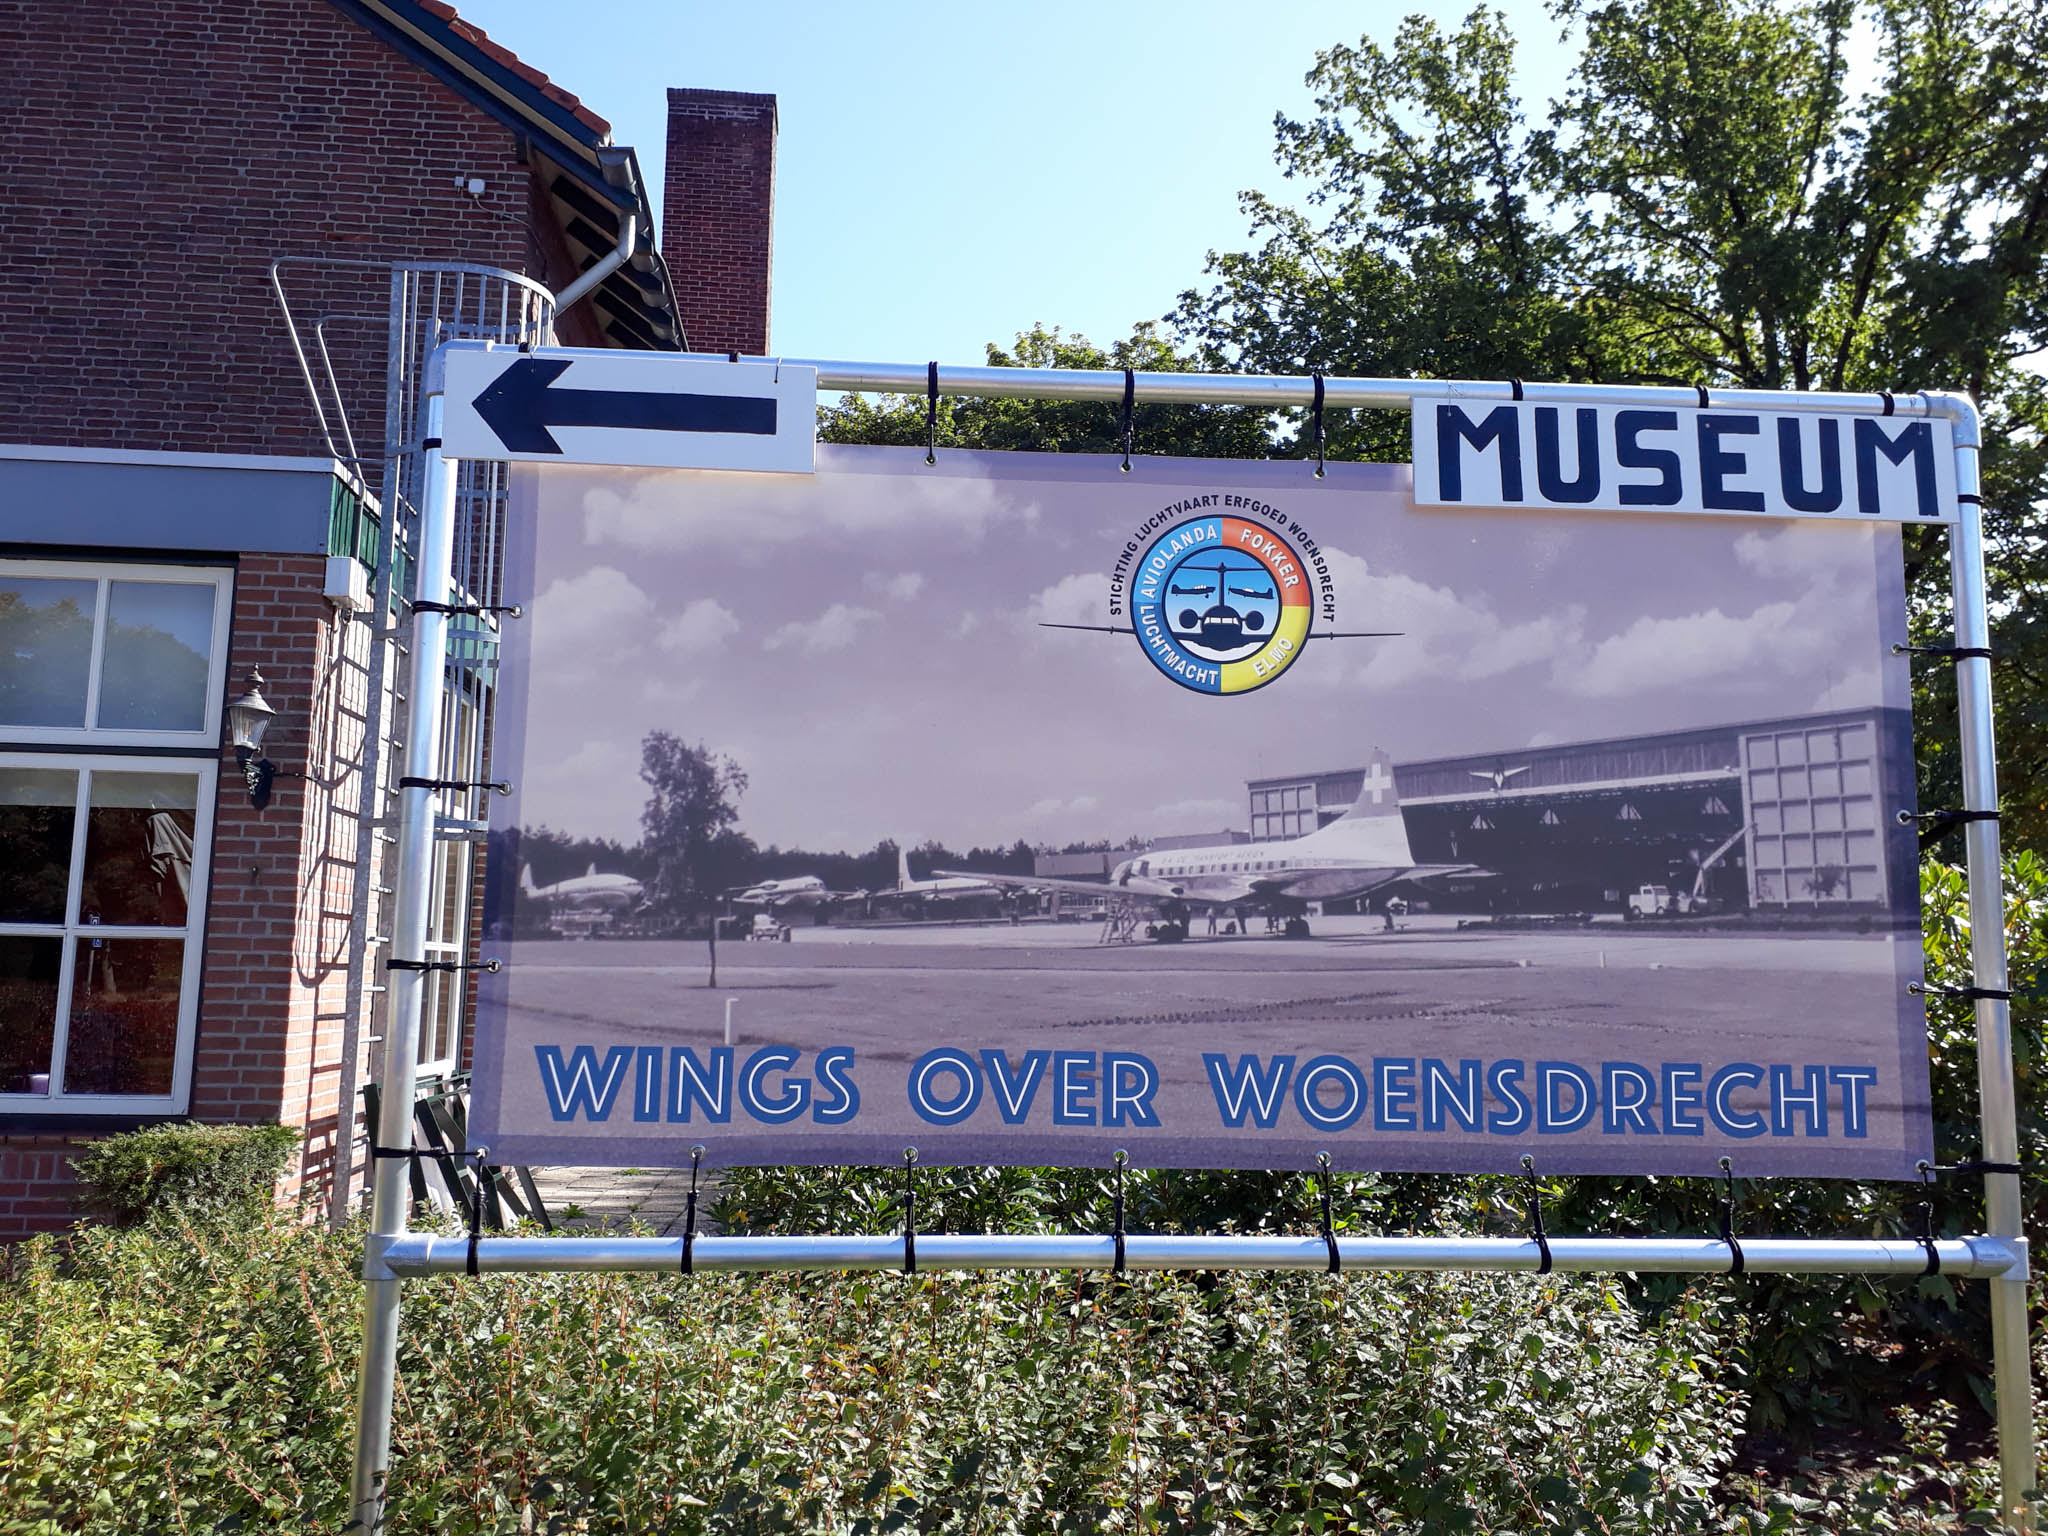 Museum Wings over Woensdrecht